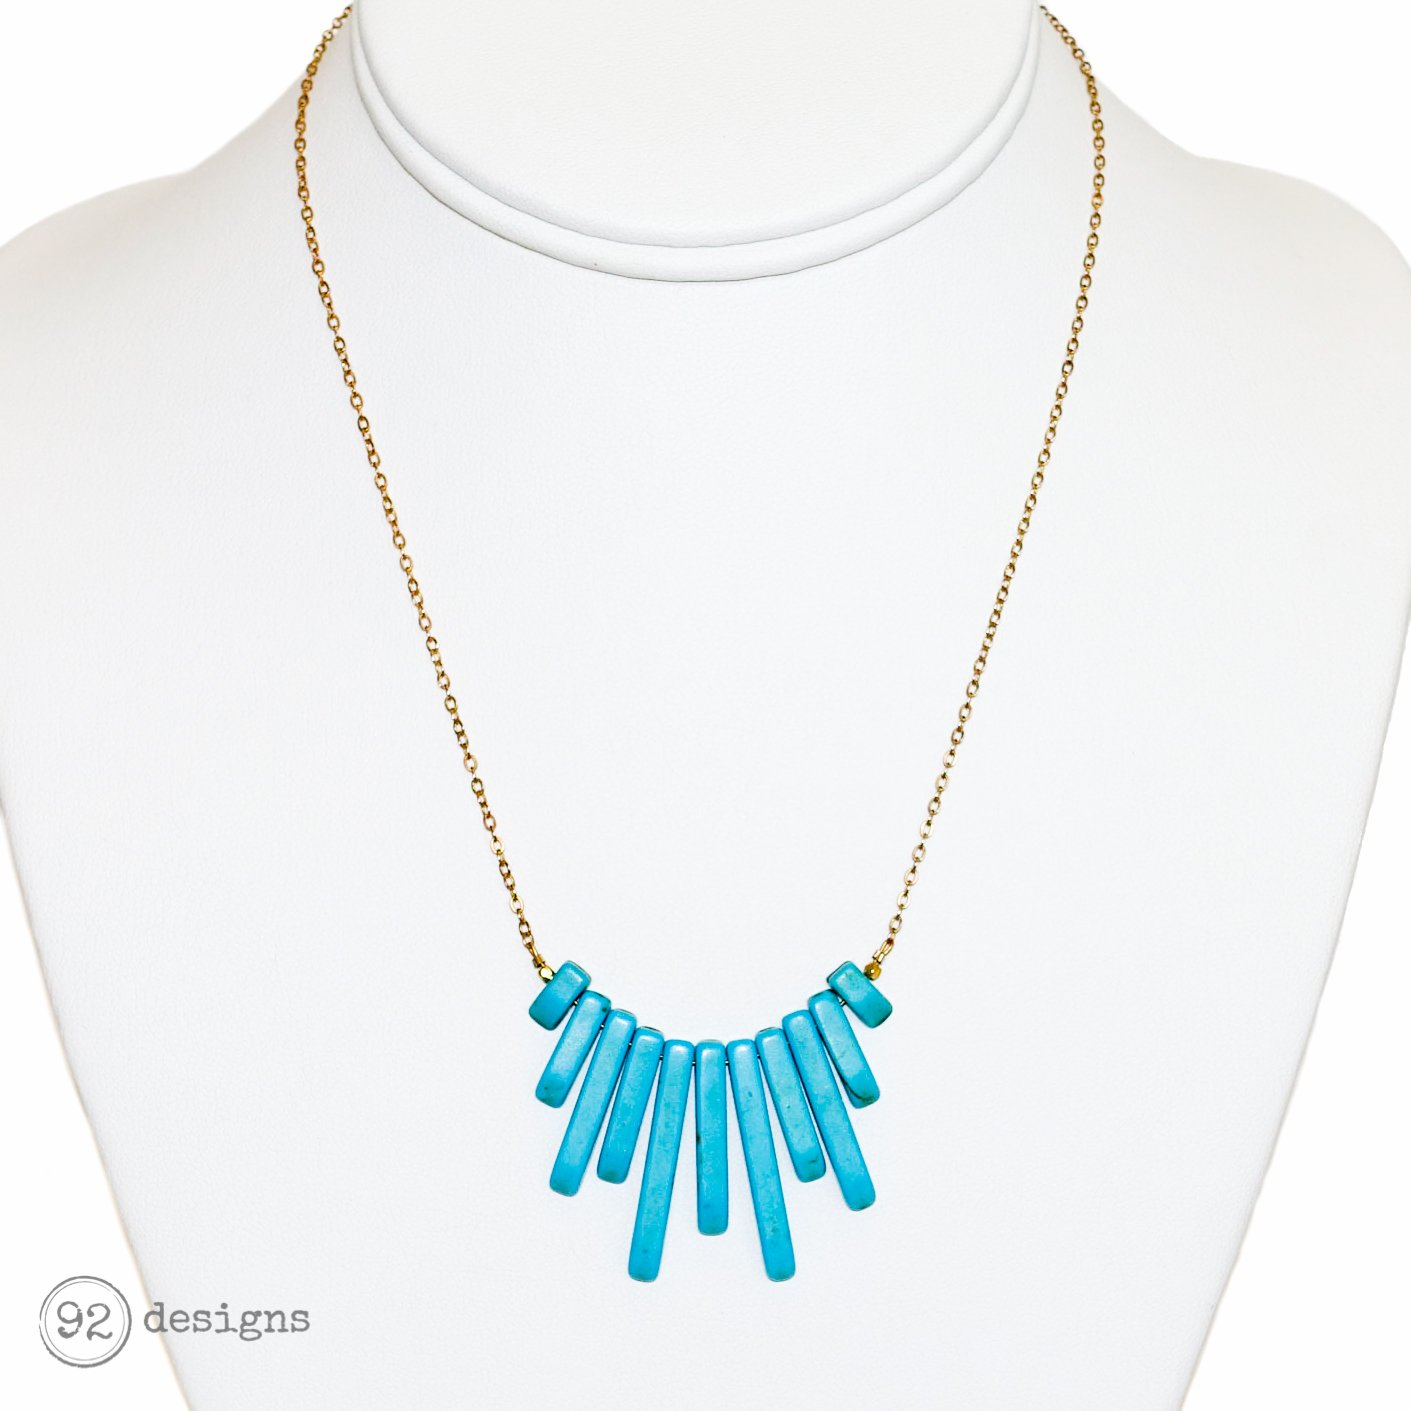 single product boca necklace cleef jewellery arpels turquoise raton van alhambra and